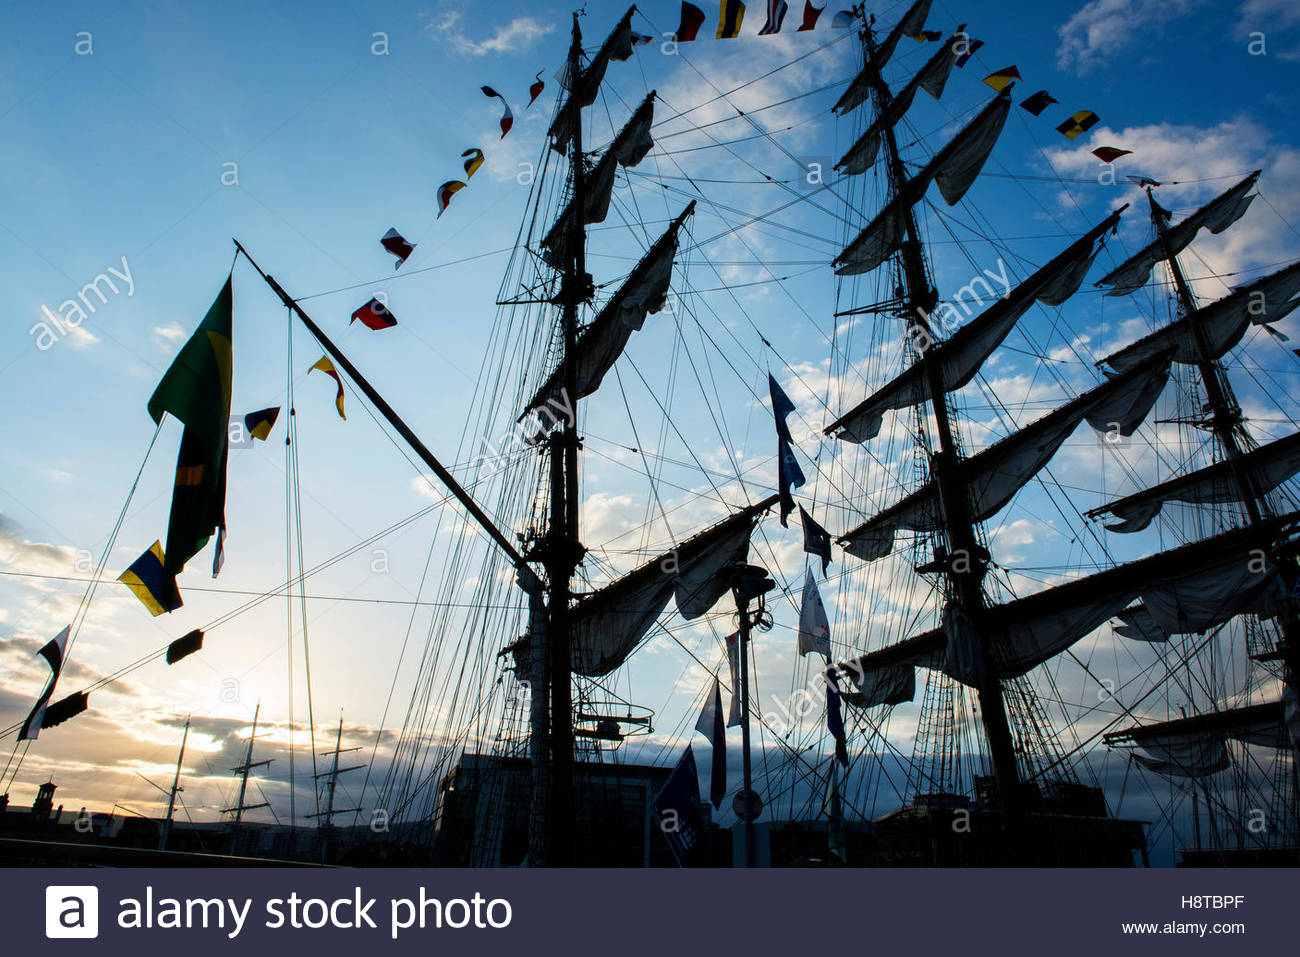 Tall Ships event at Belfast, Northern Ireland, 2015 - Stock Image